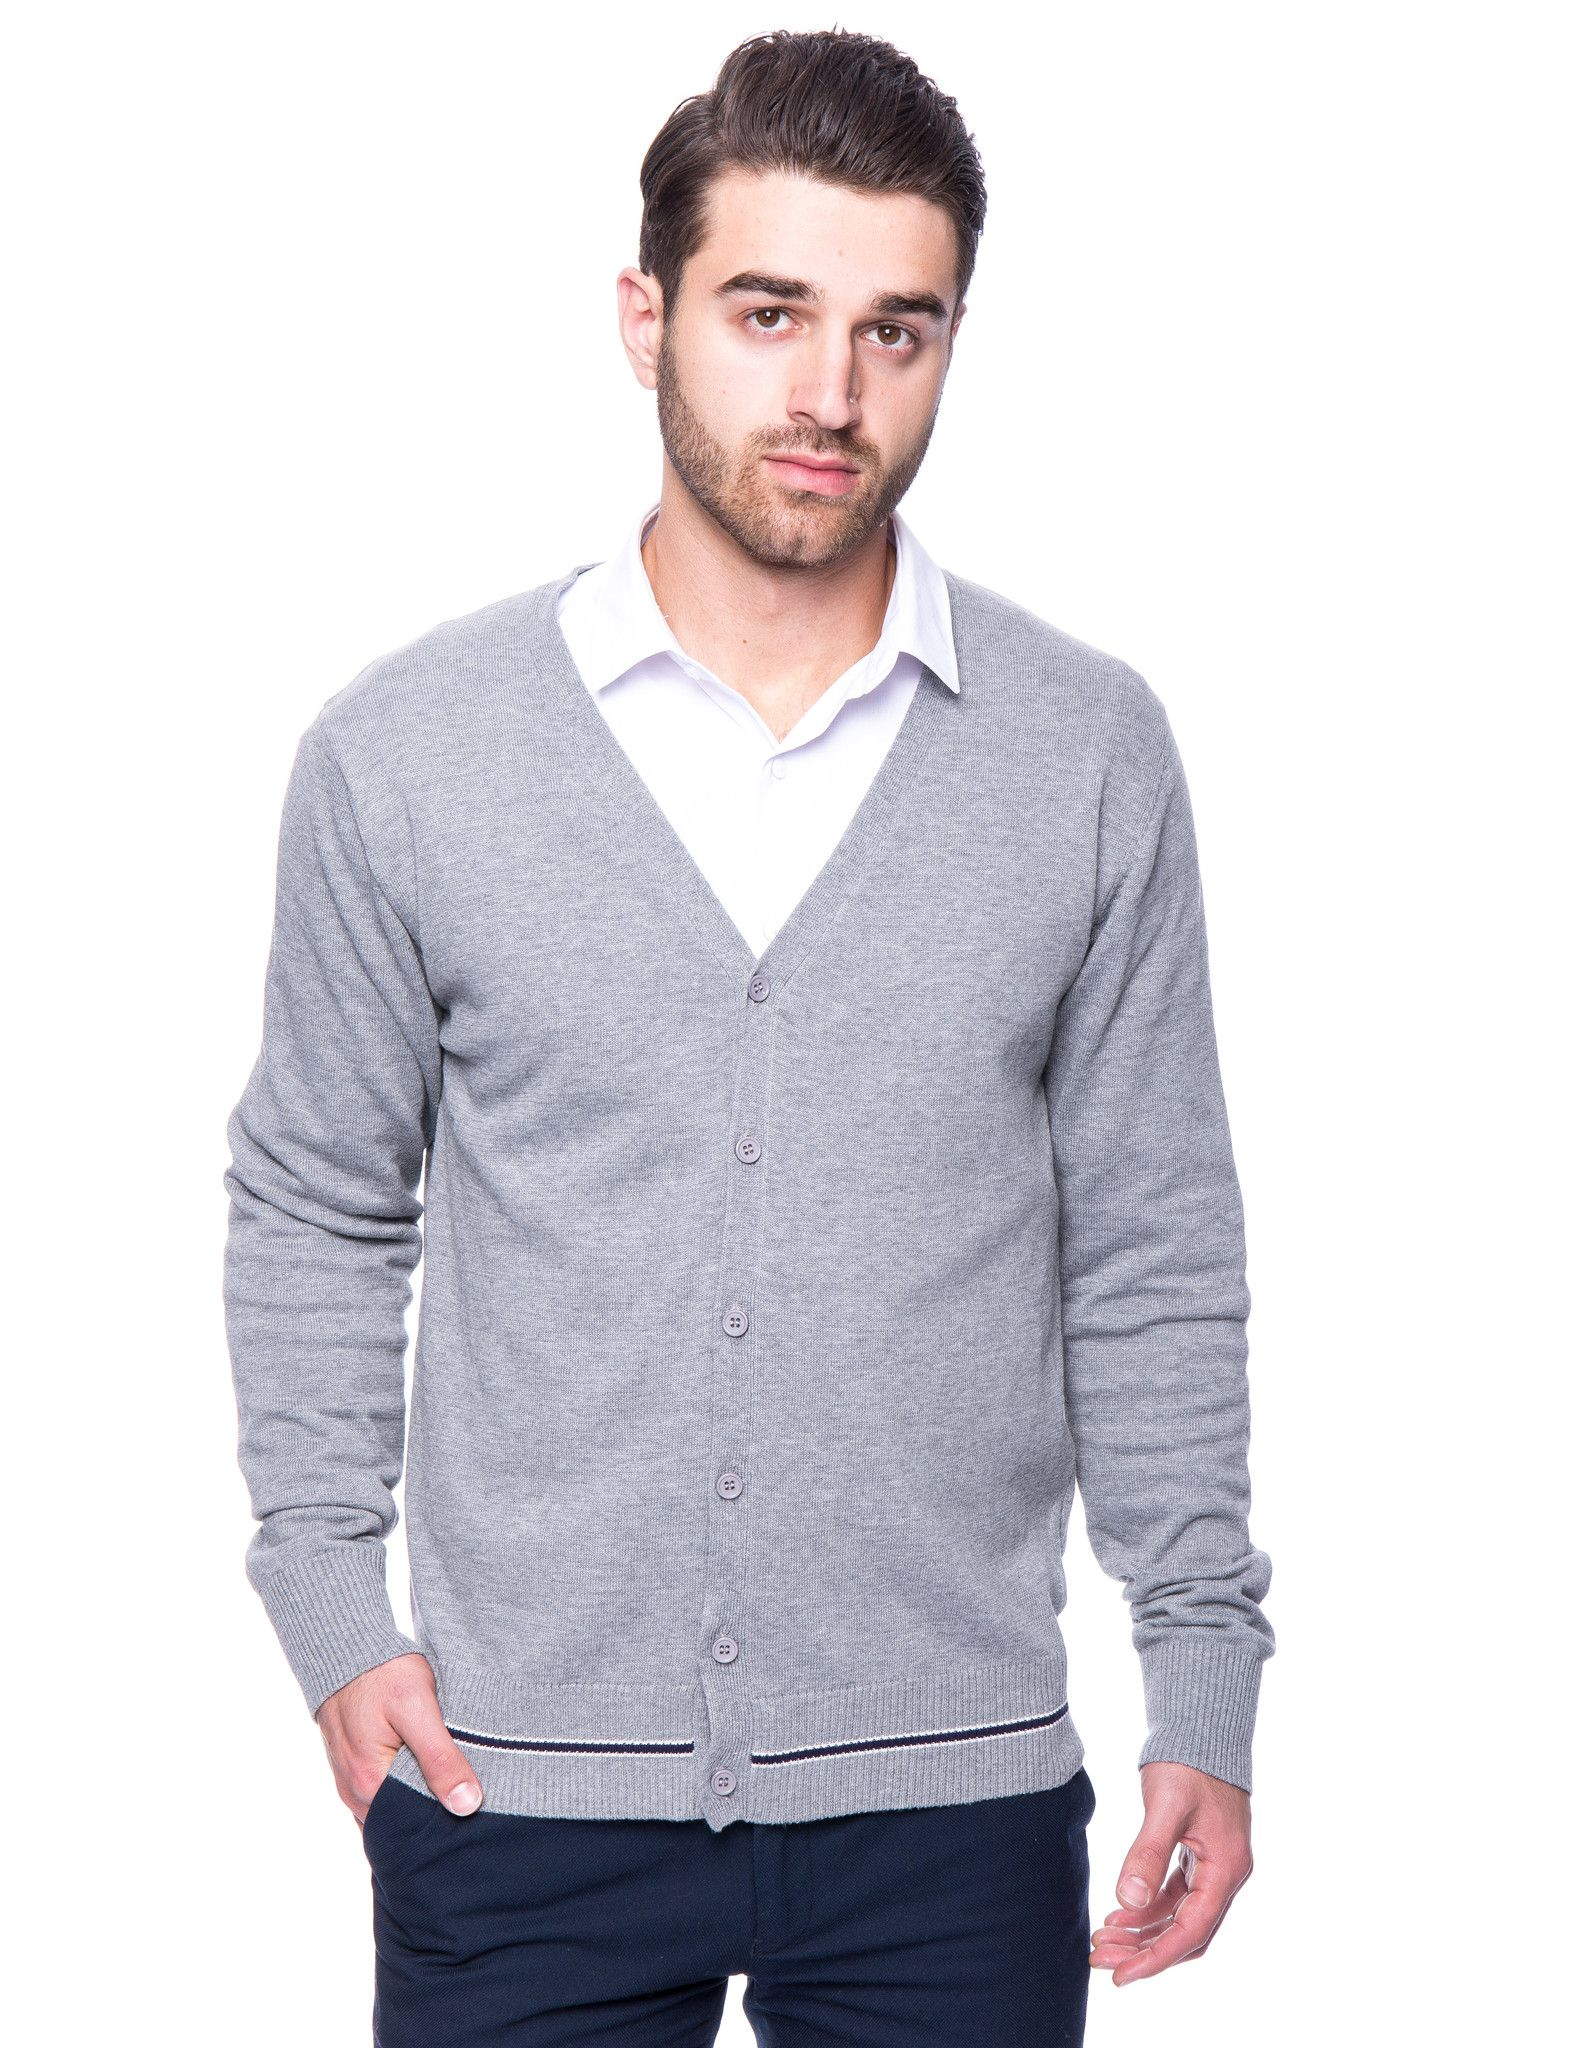 Tocco Reale Men's 100% Cotton Cardigan Sweater | Products, Cotton ...